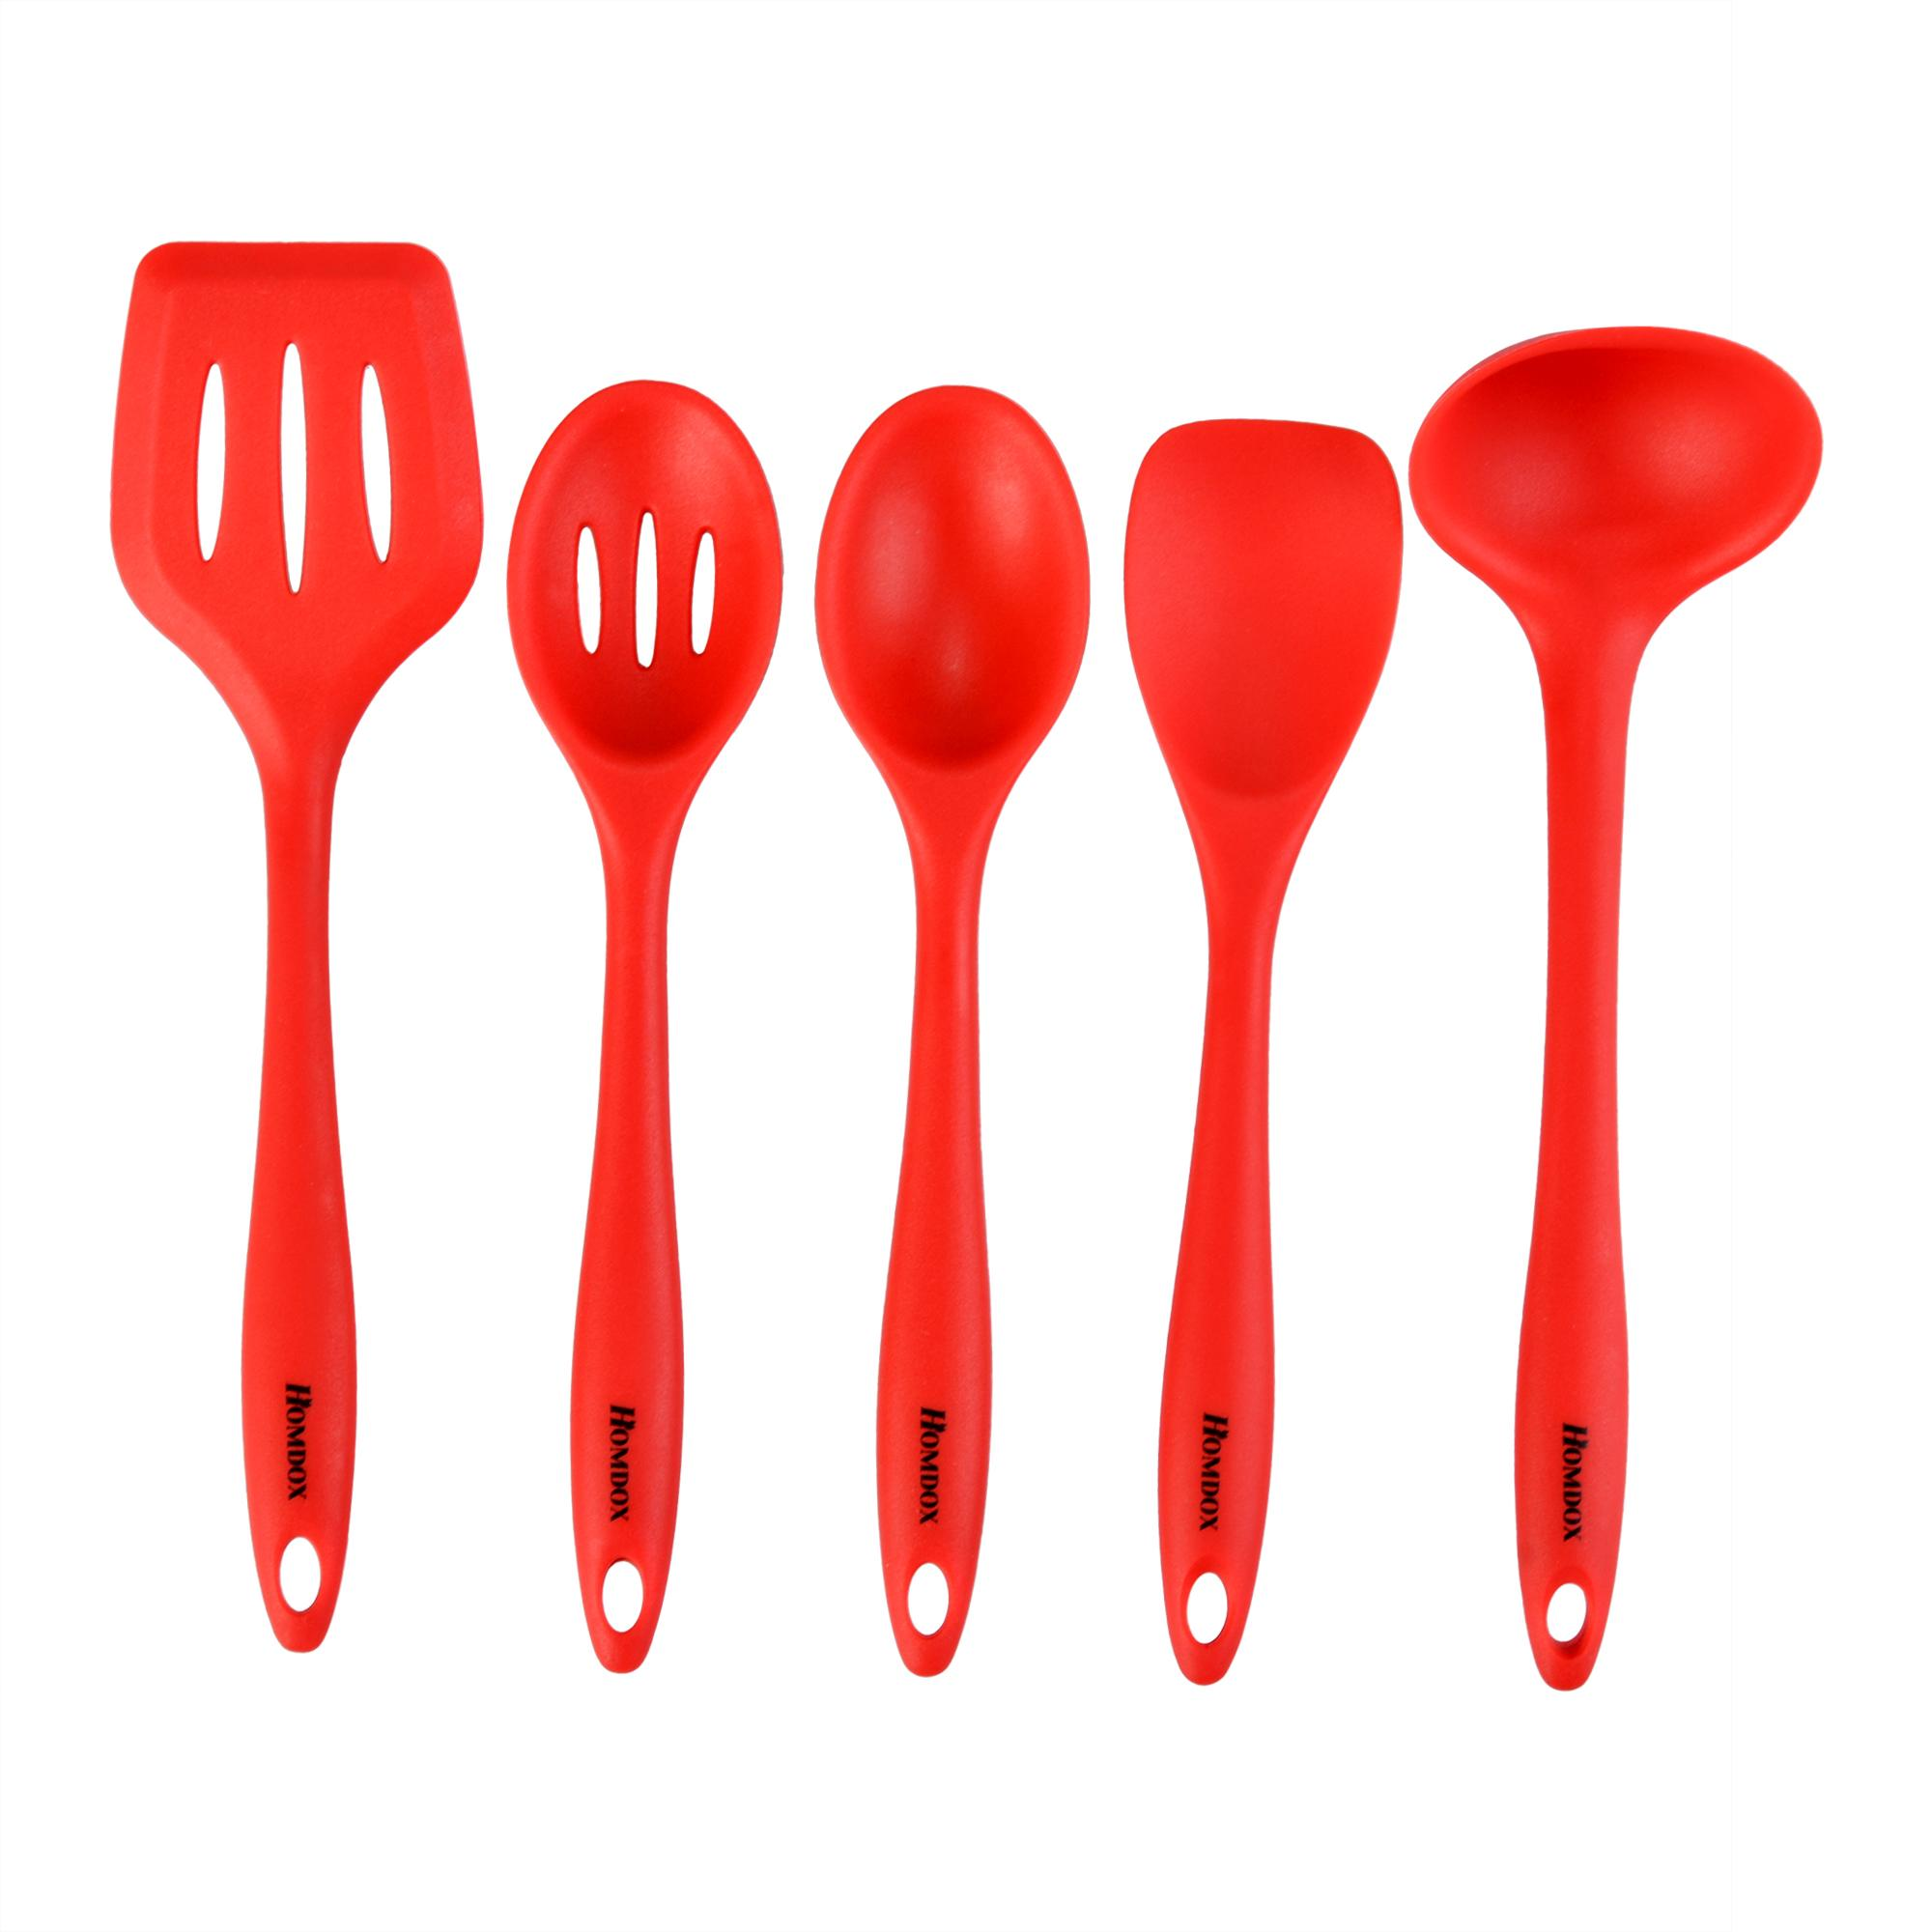 5 x Kitchen Utensil Set Silicone Spoon Baking Cooking Baking Tools Non-Stick SPHP